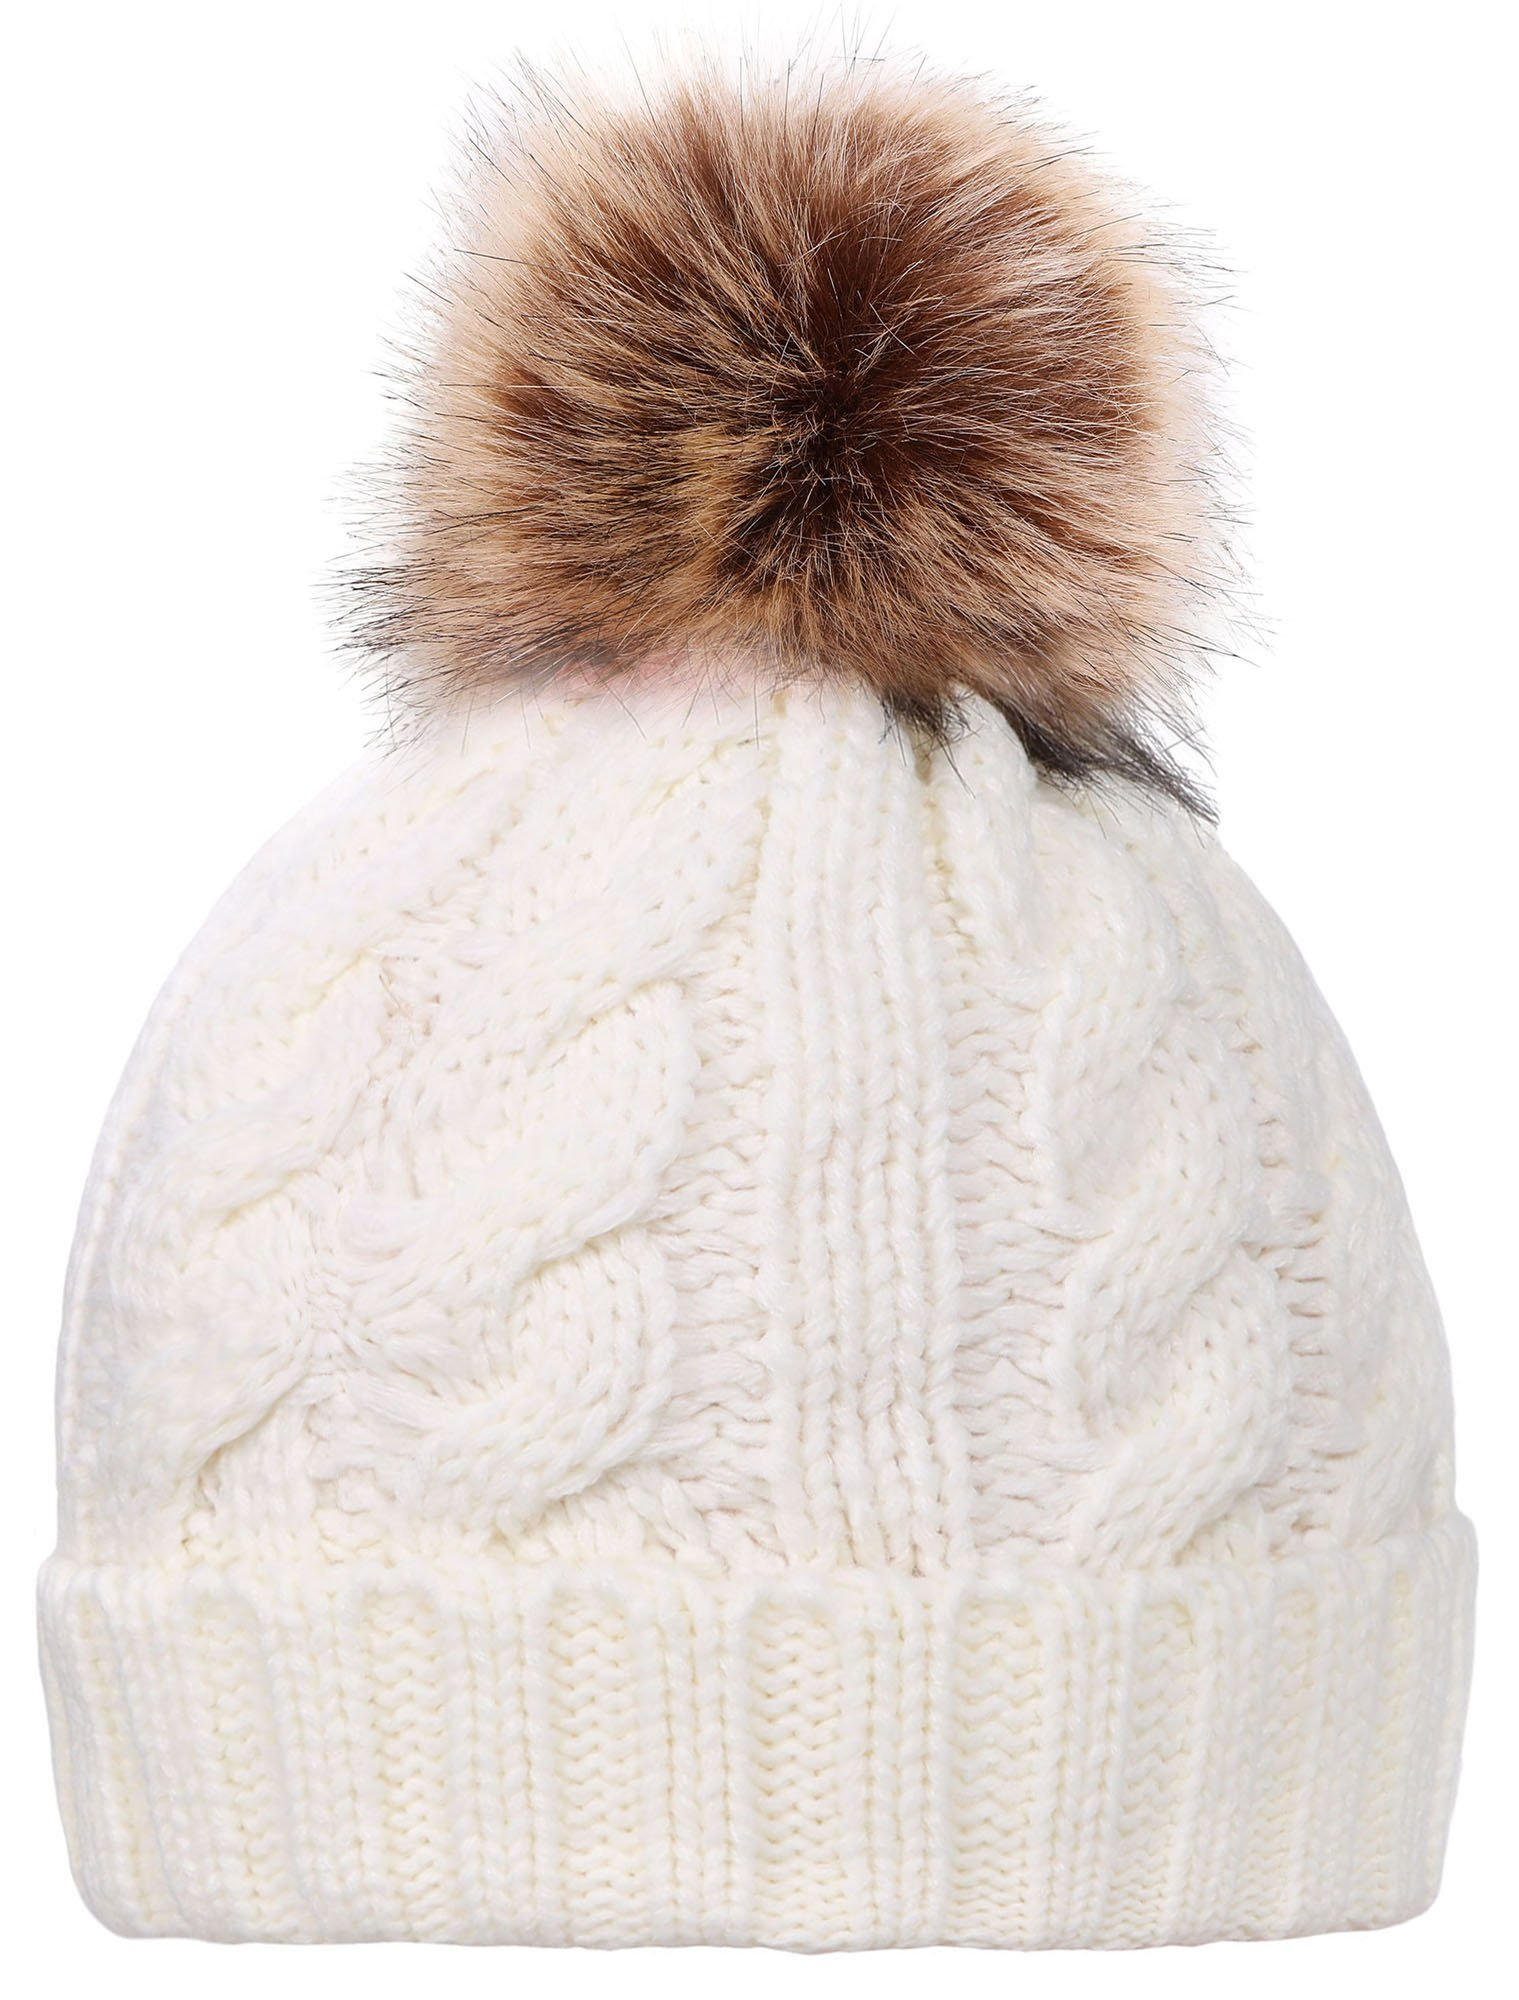 Simplicity Women's Winter Handcraft Knit Slouchy Beanie Snow Hat w/Pom Balls, White